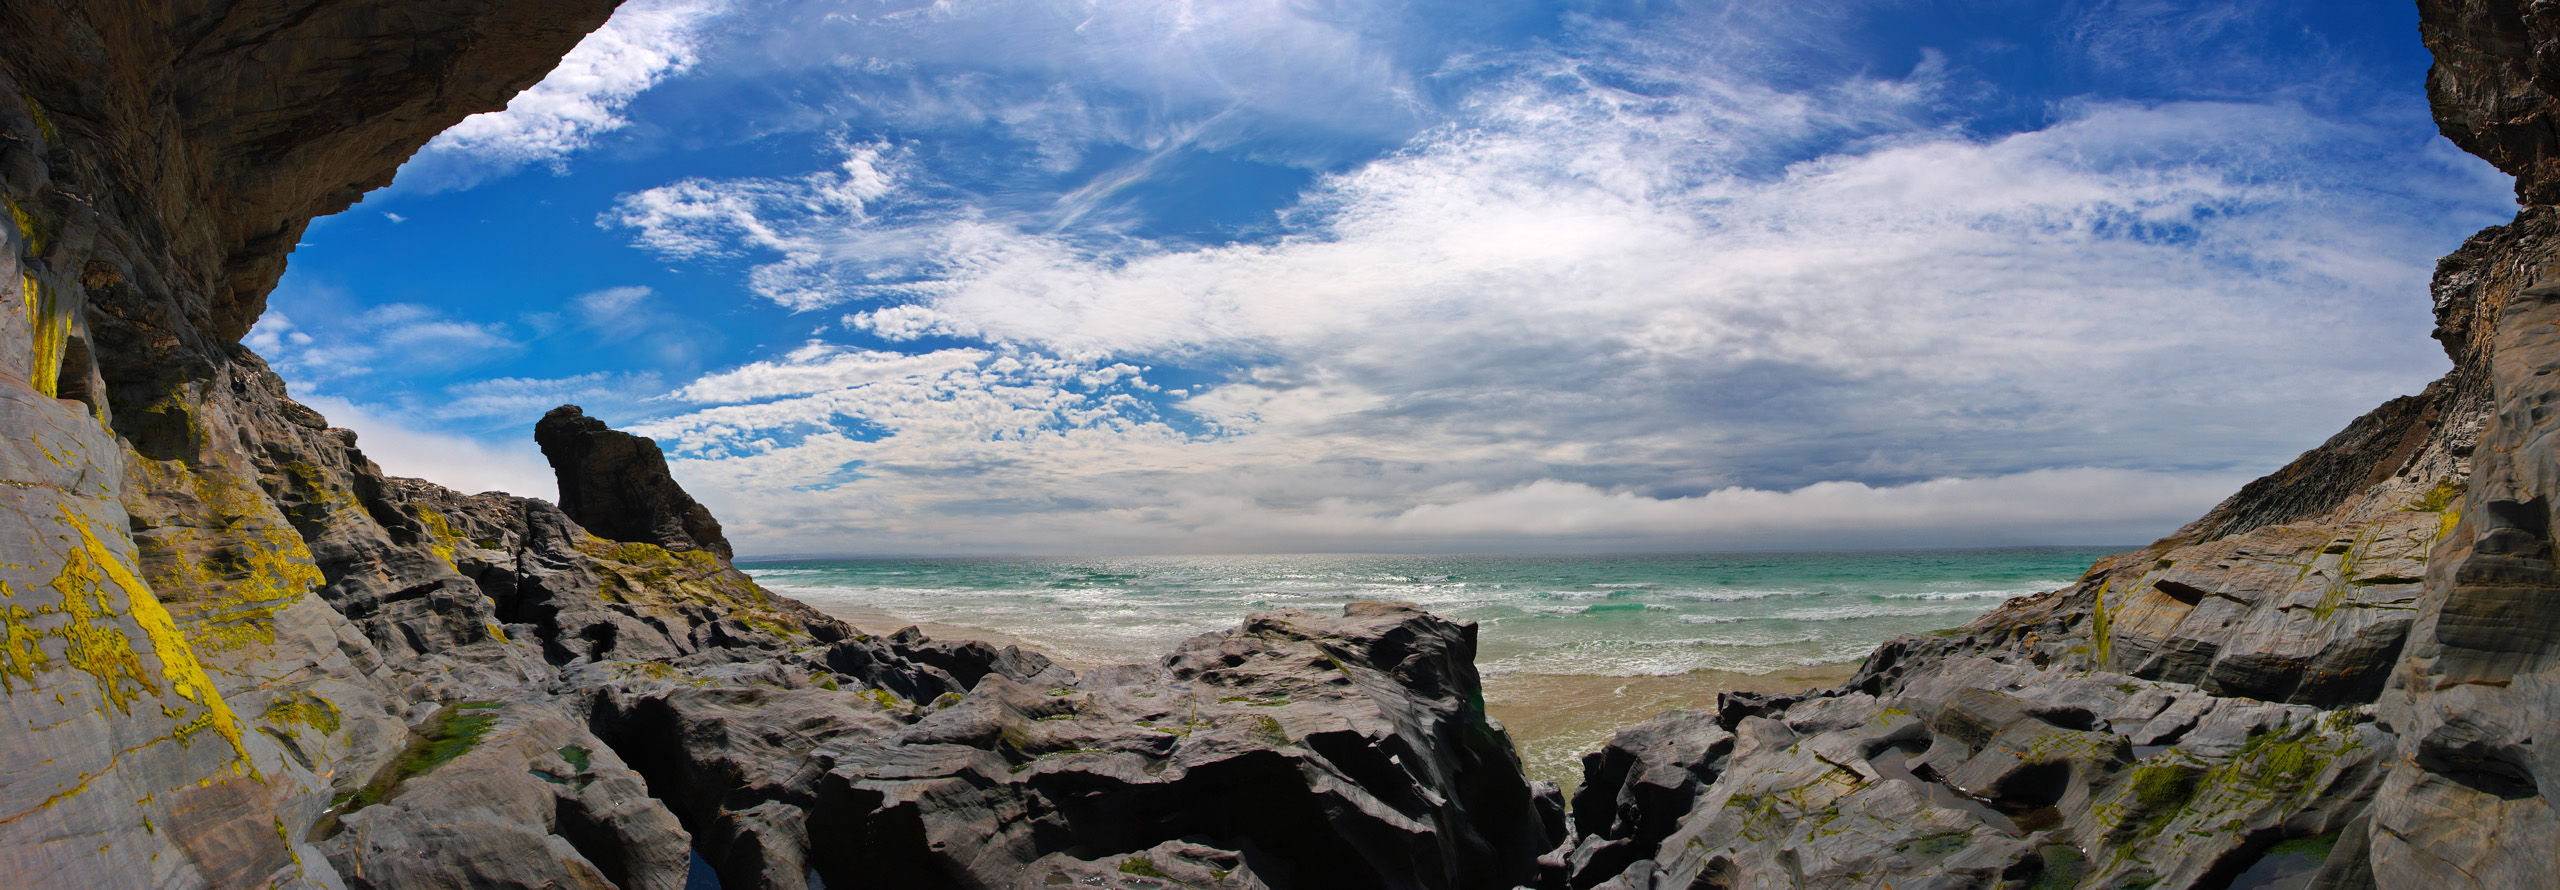 Bedruthan rocks panorma, with a storm brewing out to sea